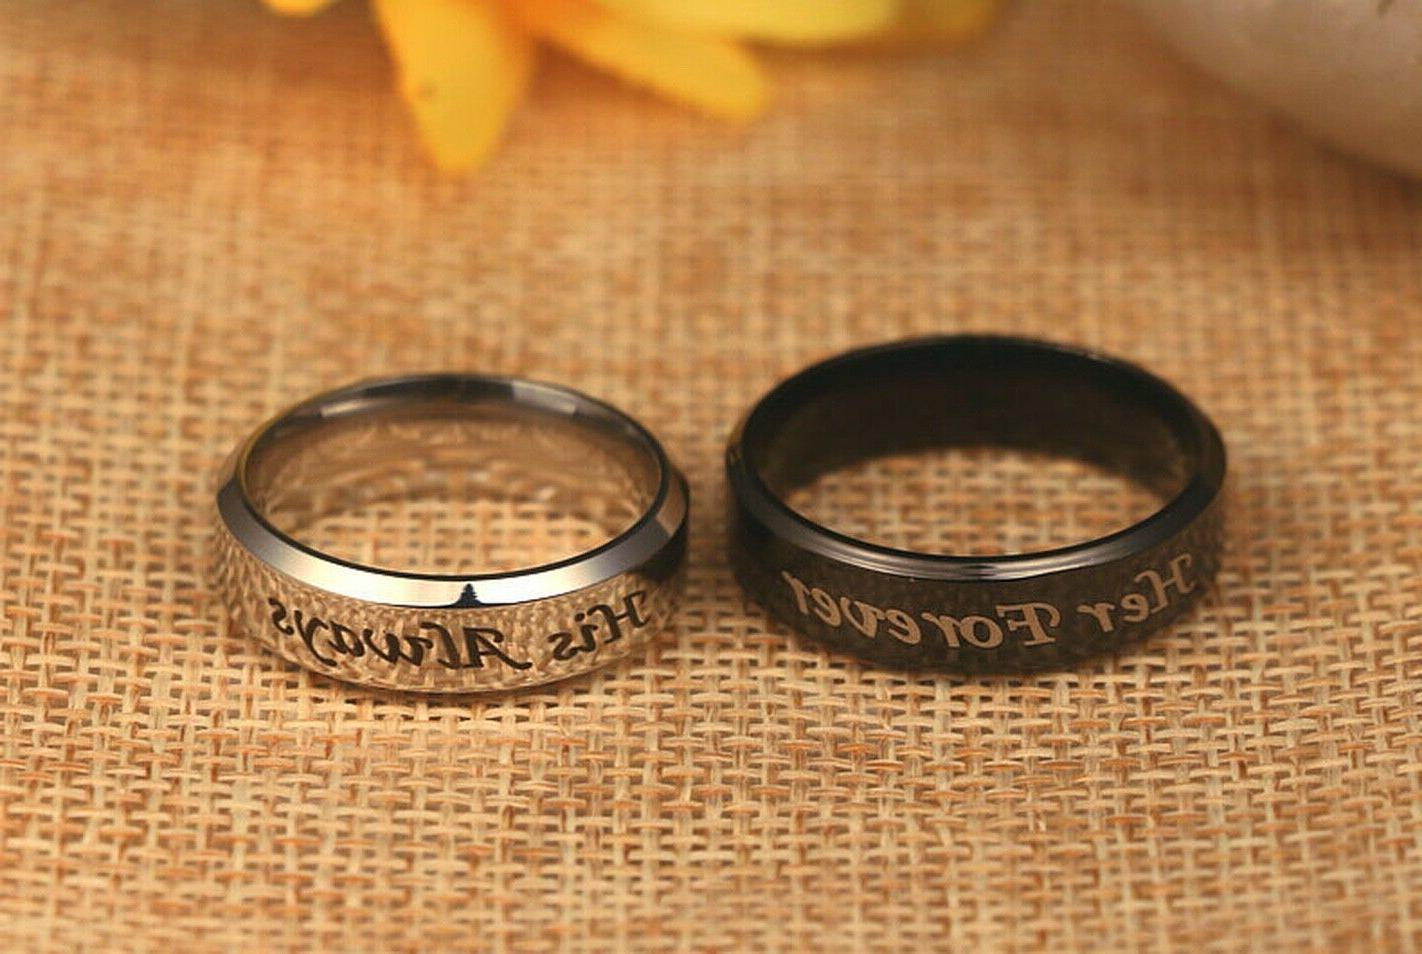 Couple's Promise His or Forever Band